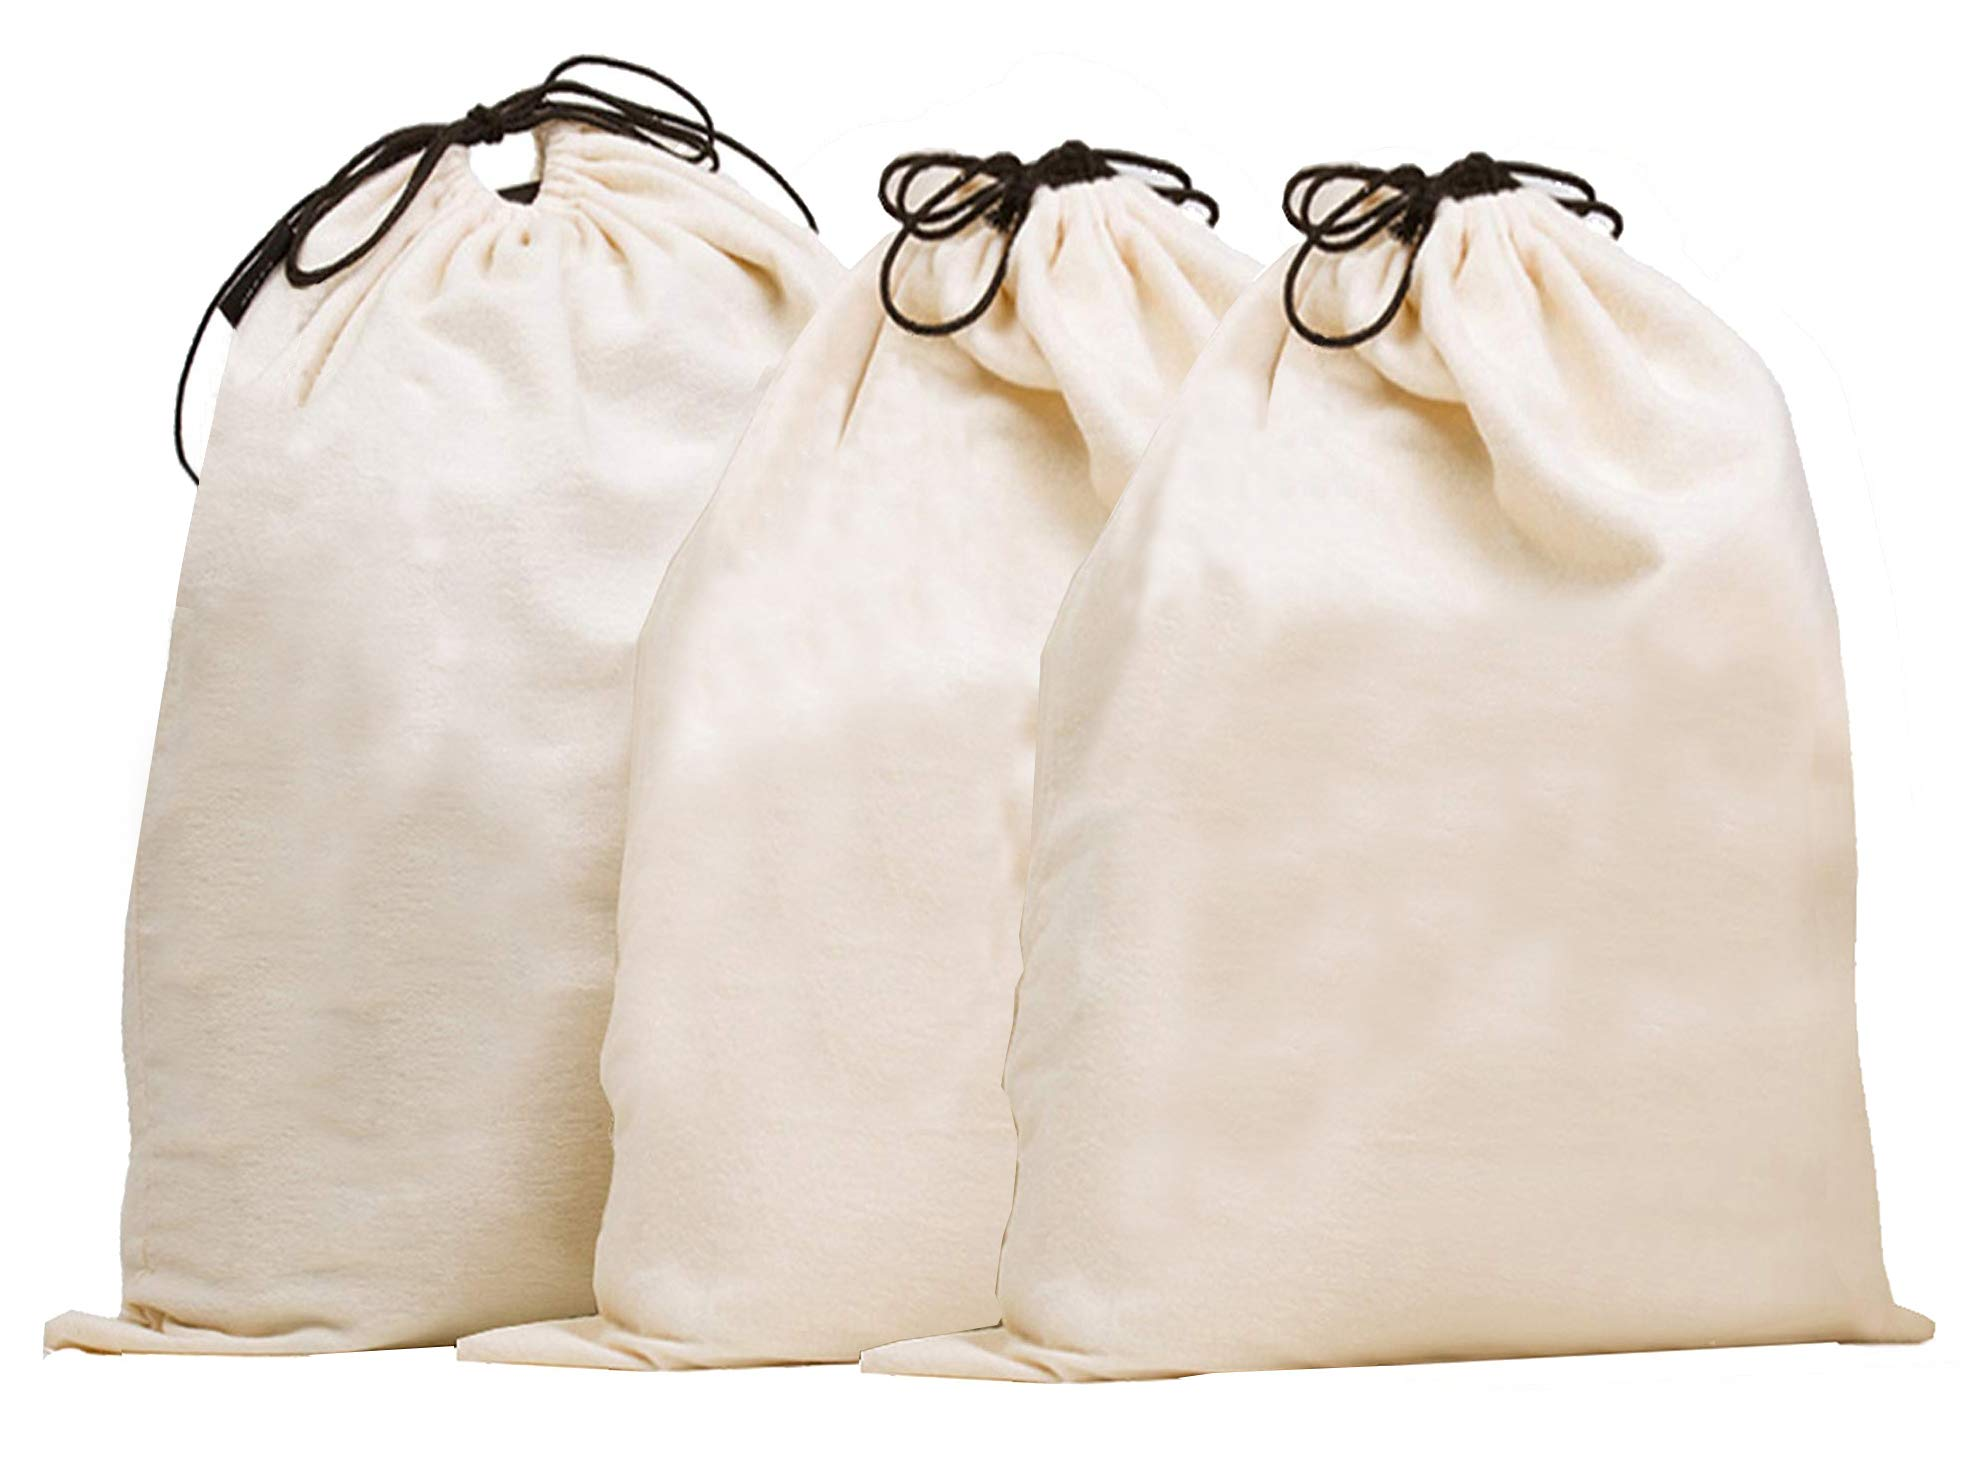 MISSLO Set of 3 Cotton Breathable Dust-Proof Drawstring Storage Pouch Bag, (Pack 3 XL) by MISSLO